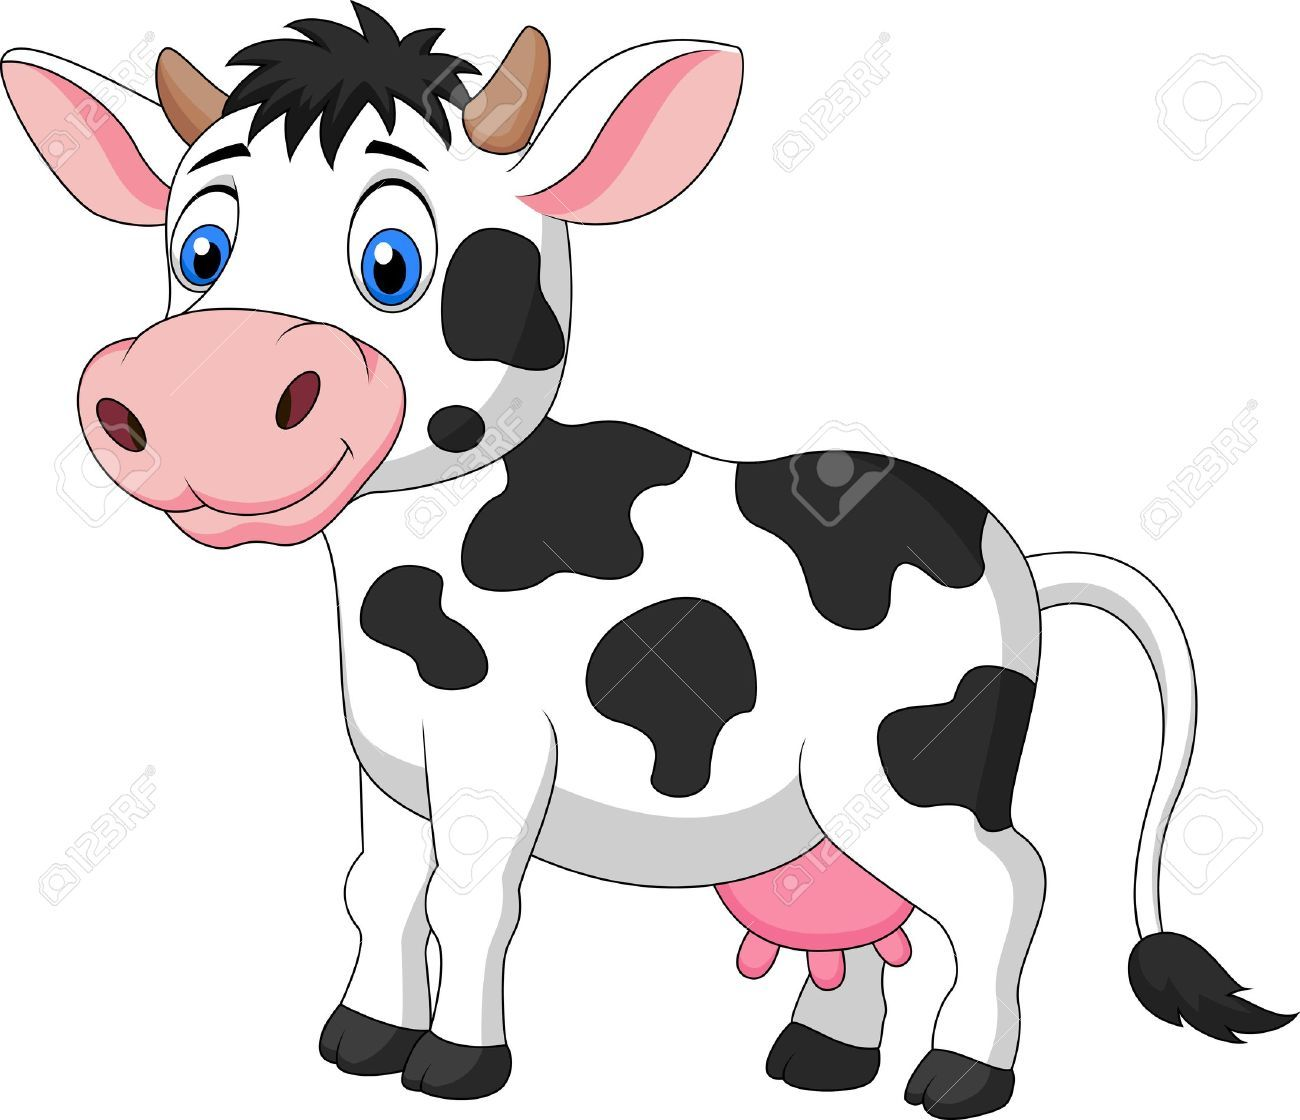 Pin By Jomaesar On Orto Cute Cows Cartoon Cow Cow Clipart